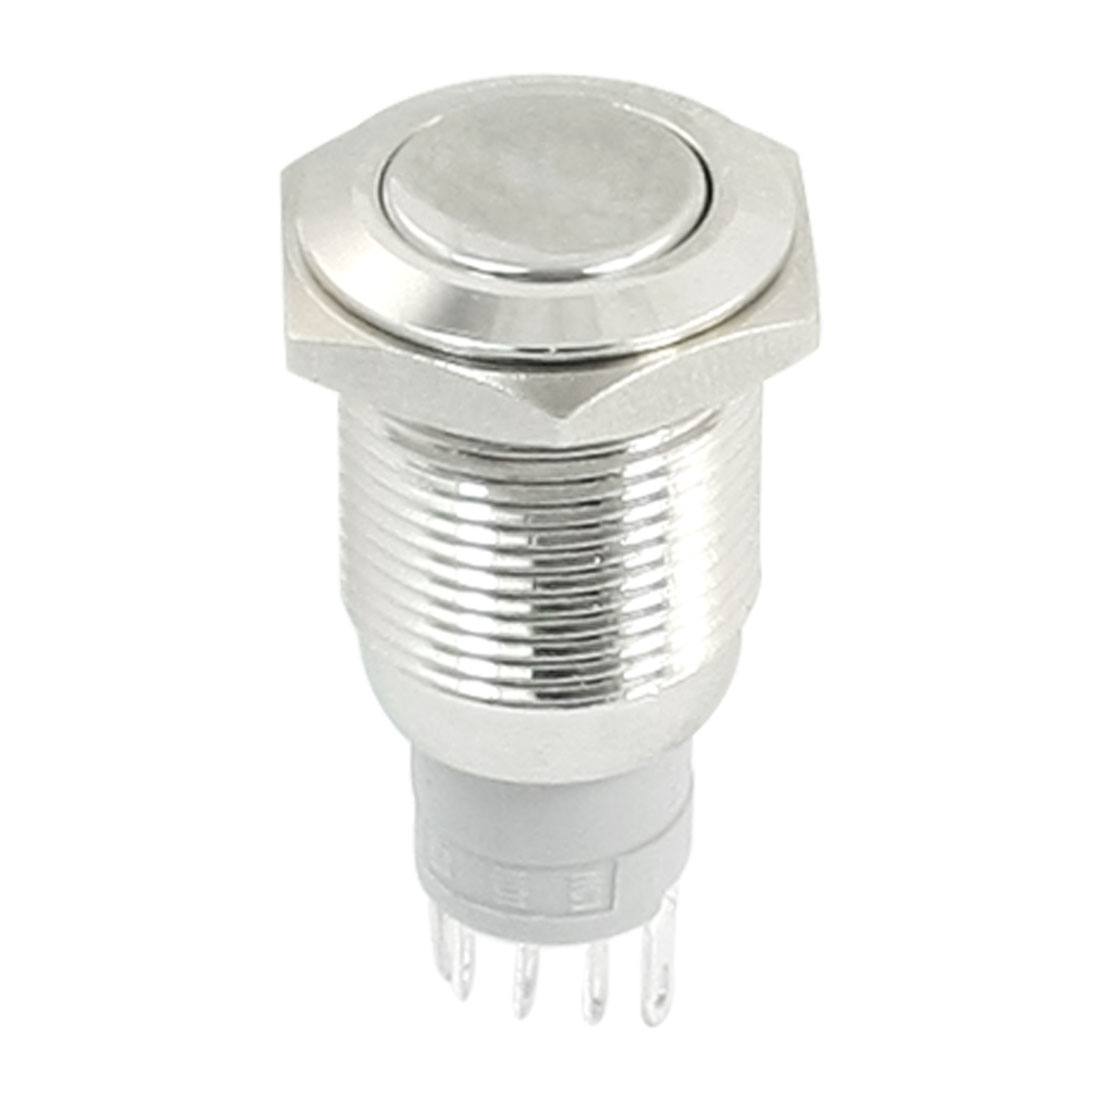 AC250 3A Flat Head 5 Pins SPDT 1NO 1NC 16mm Thread Panel Mount Momentary Metal Pushbutton Switch